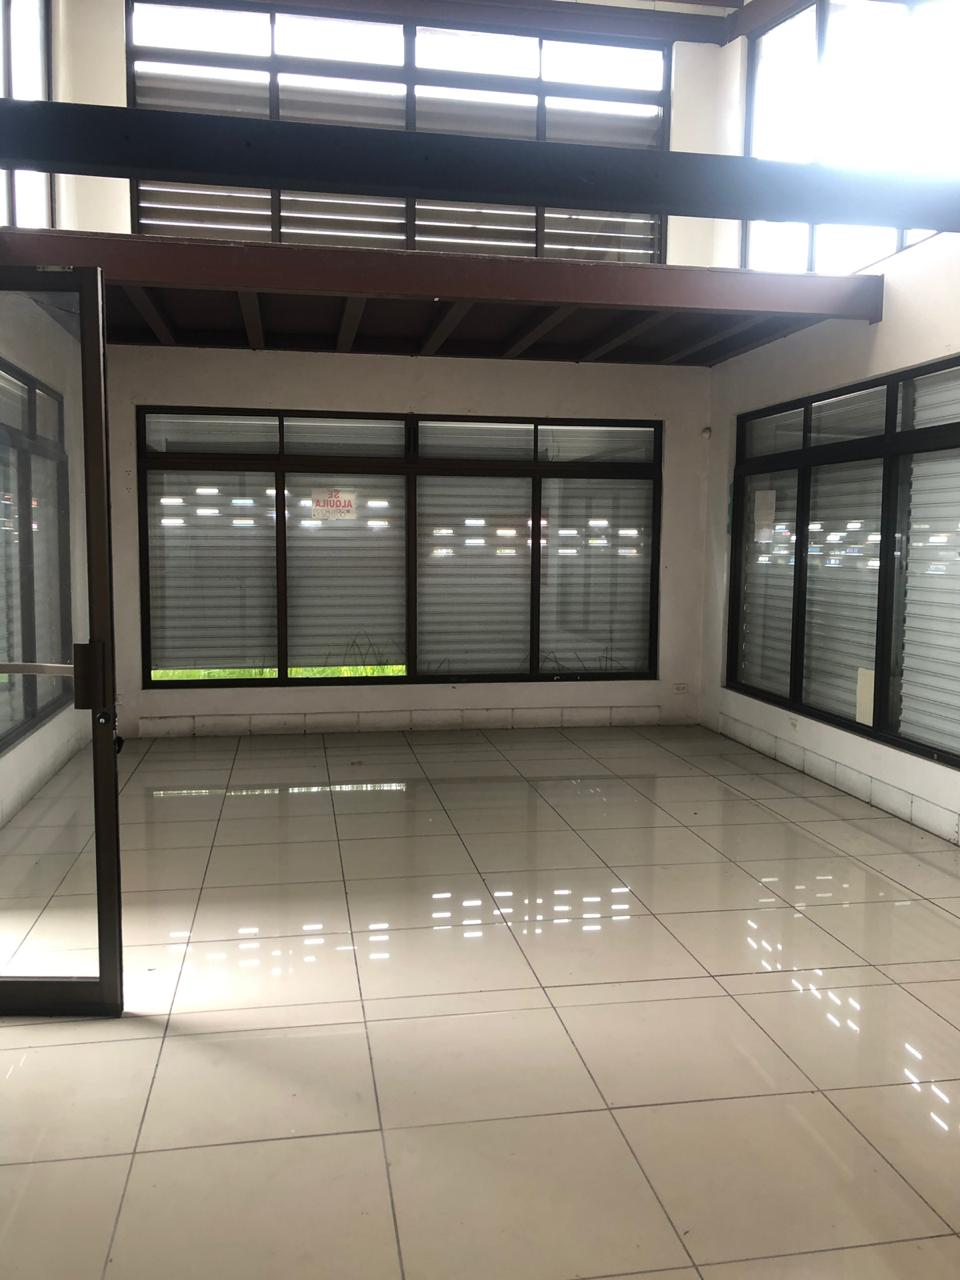 Shop for rent, Escazú. 40 sq mts